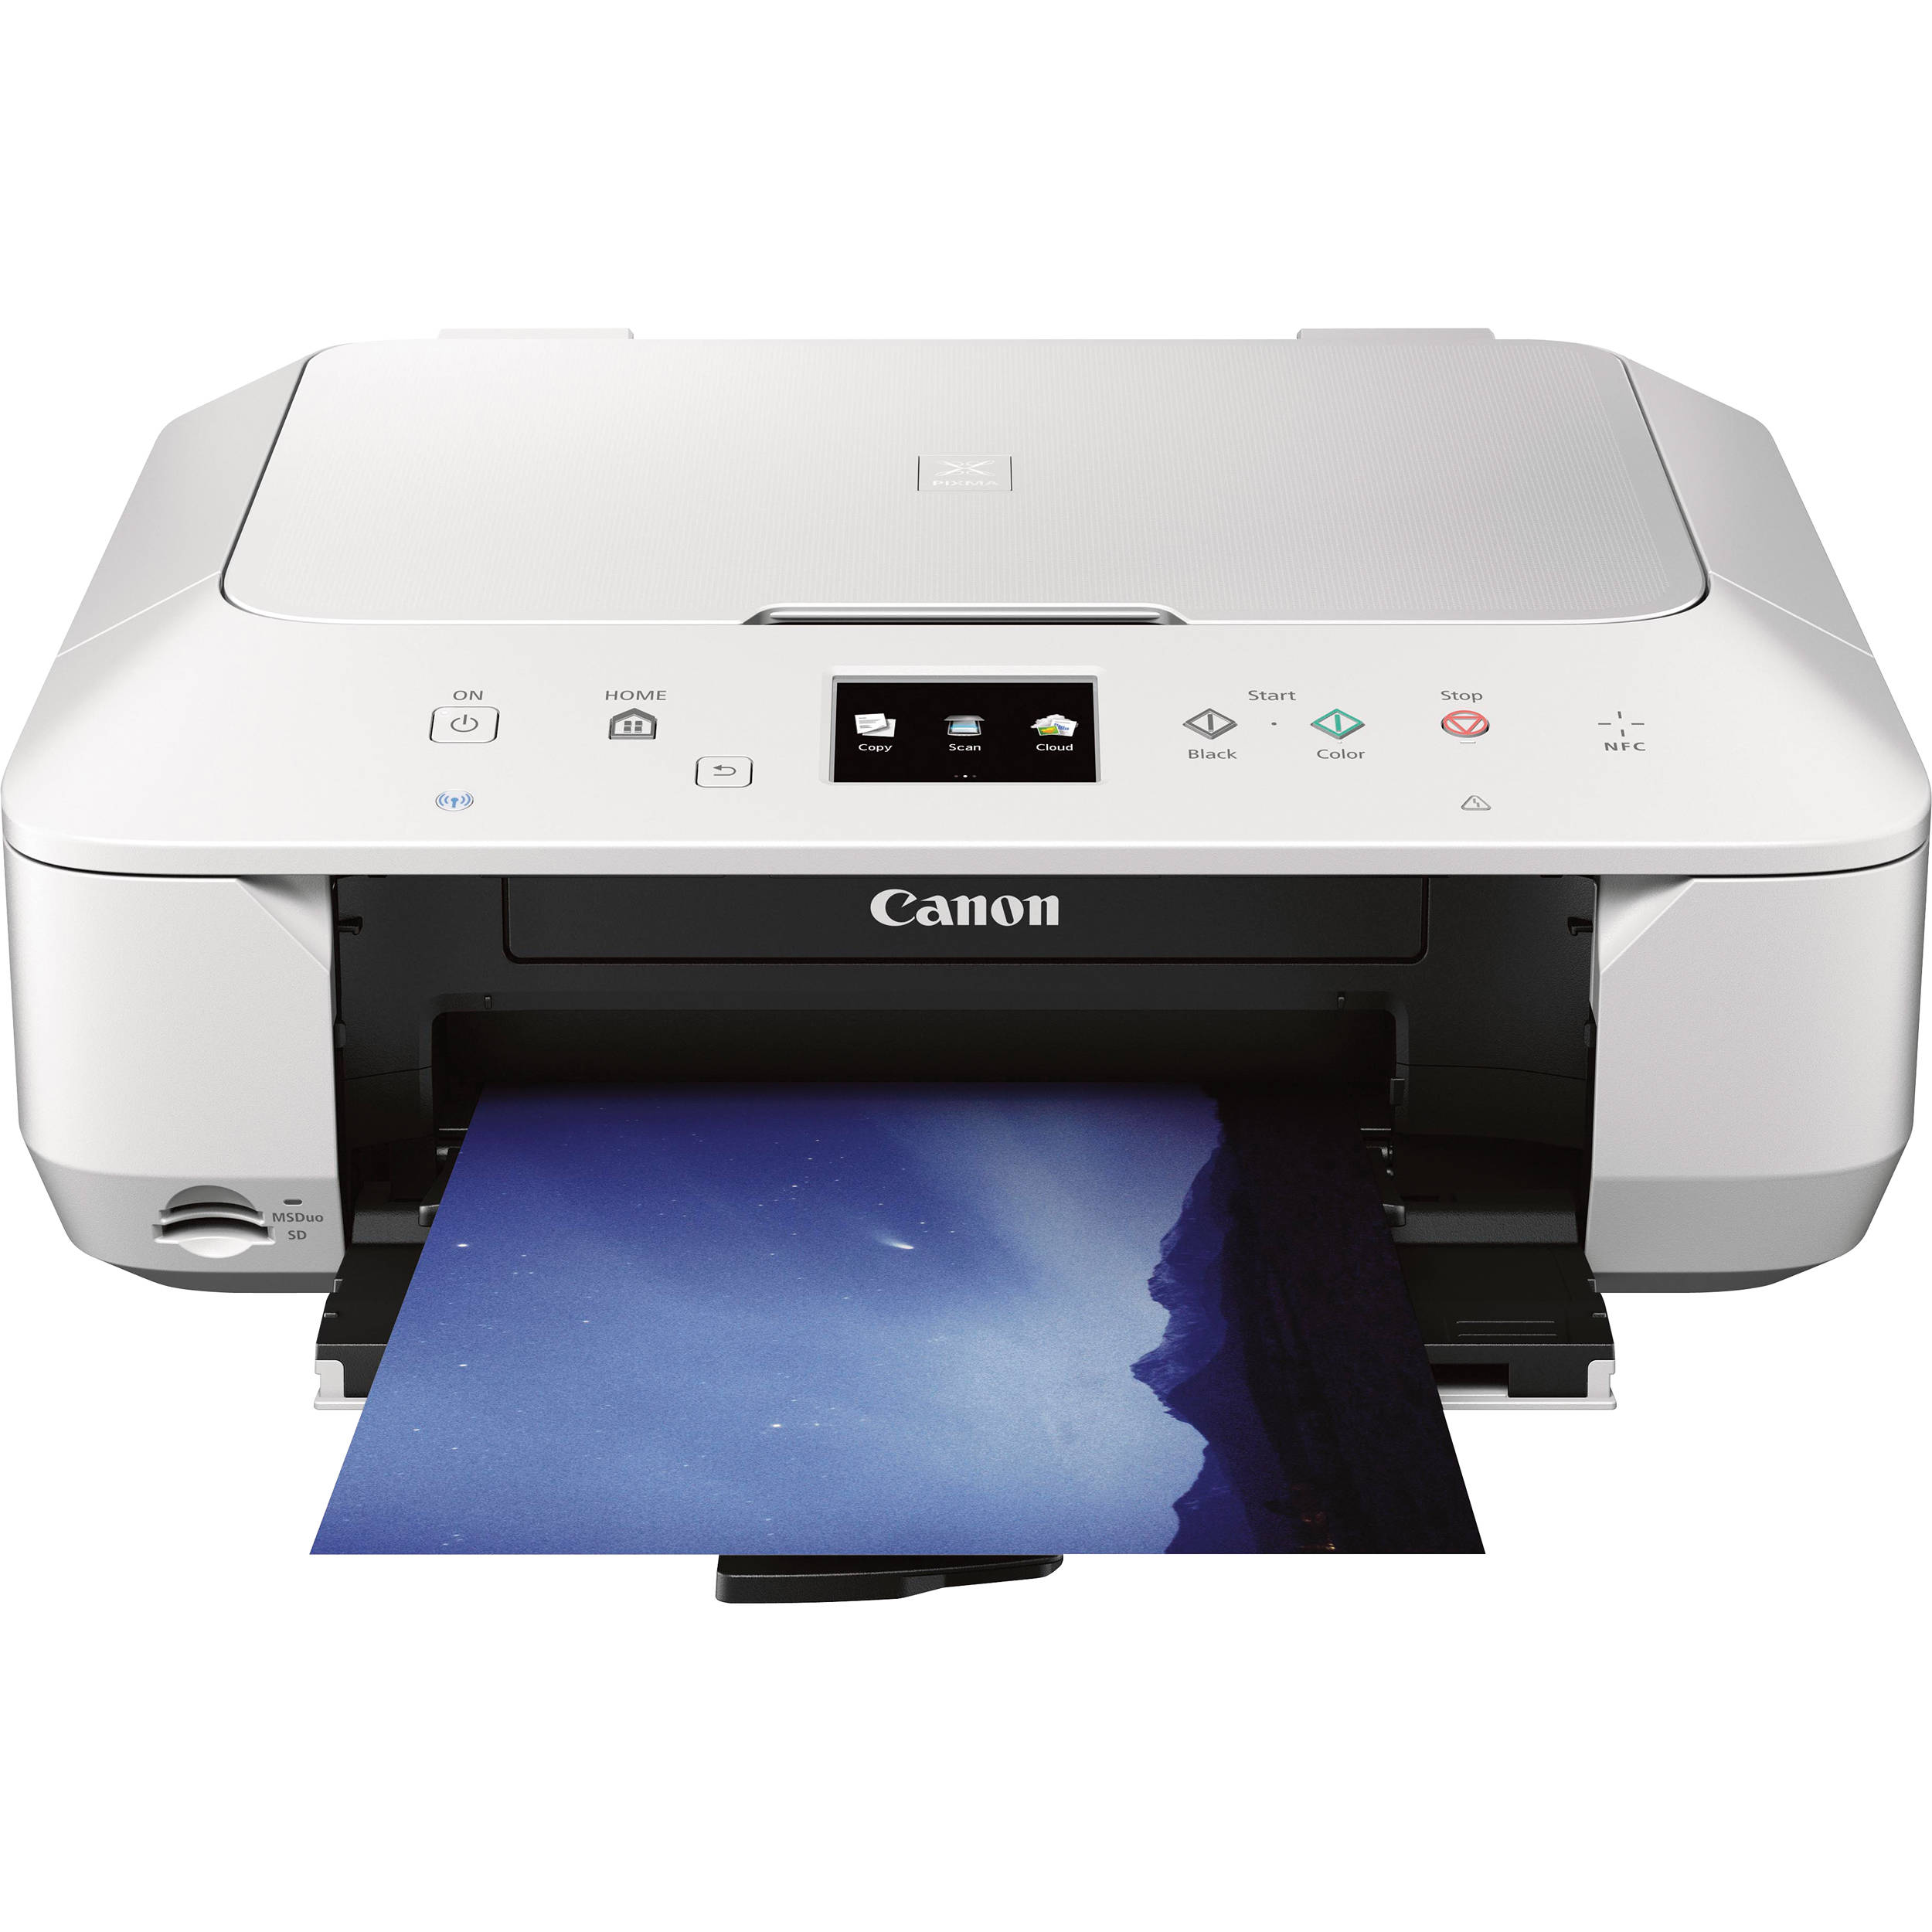 Canon Pixma Mg6620 Wireless Photo All In One Inkjet 9539b022 Bh